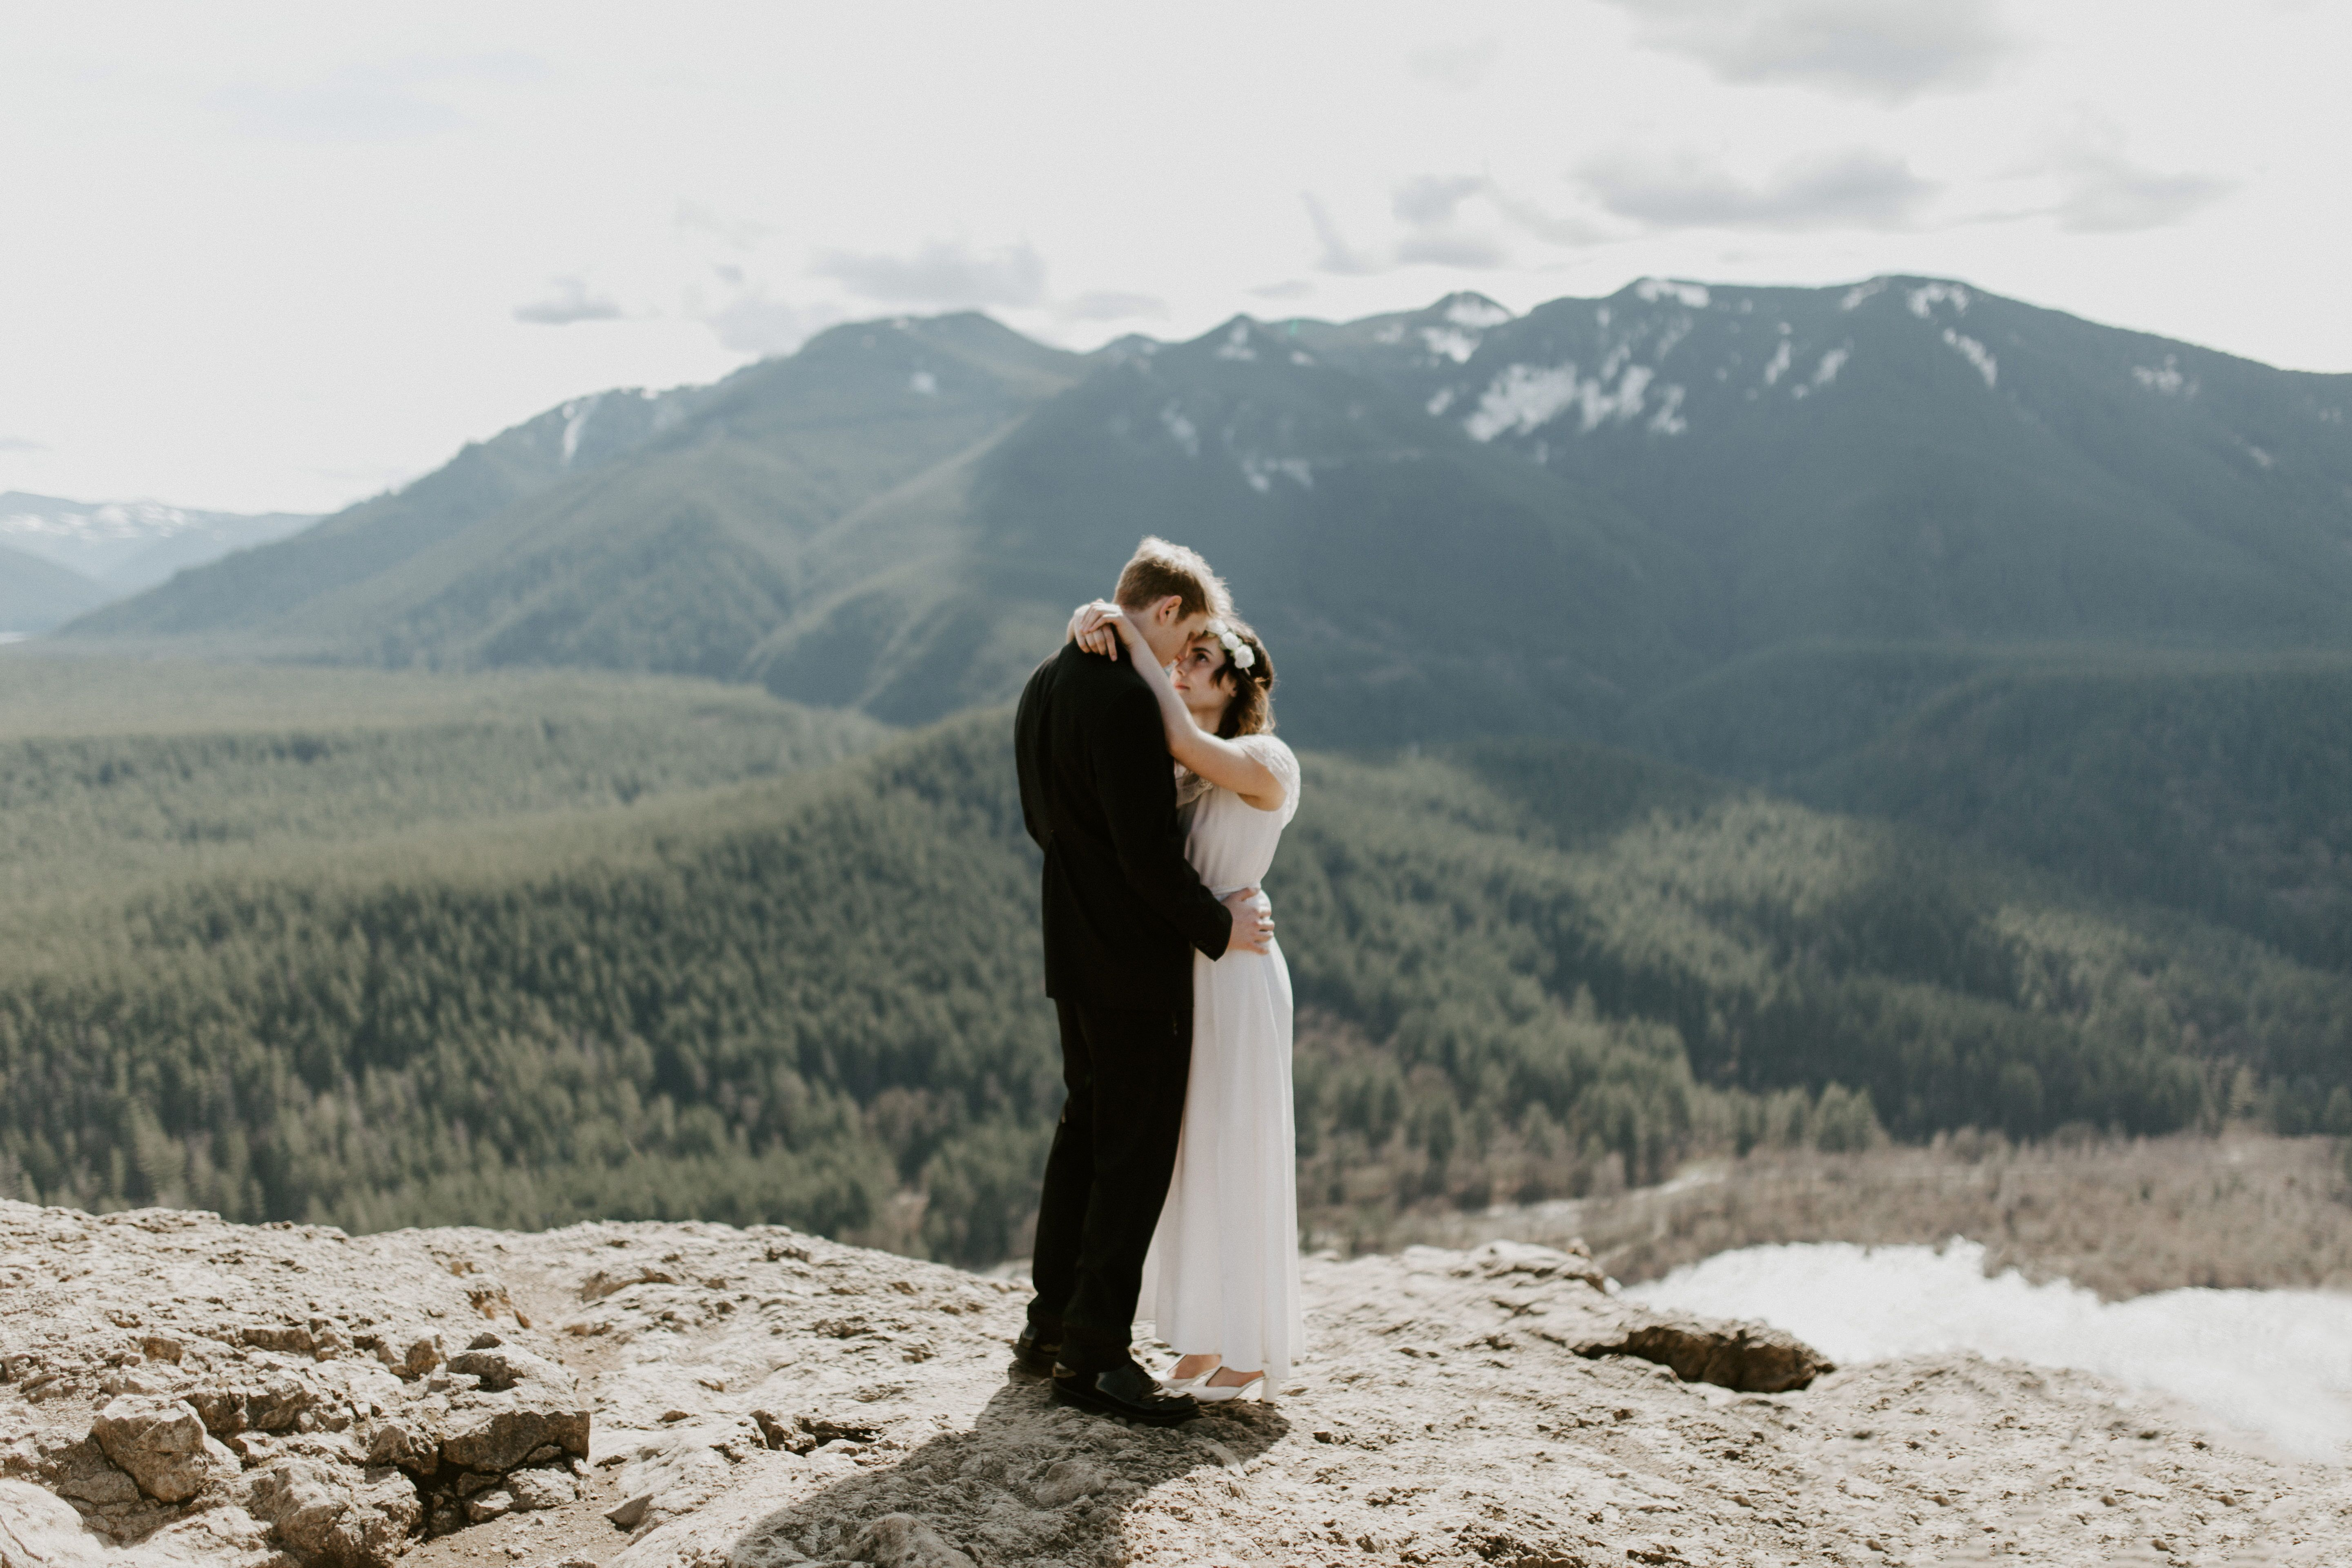 Michael and Winnifred hold eachother while standing on Rattlesnake Ledge. Elopement adventure shoot at Rattlesnake Ledge, Washington.